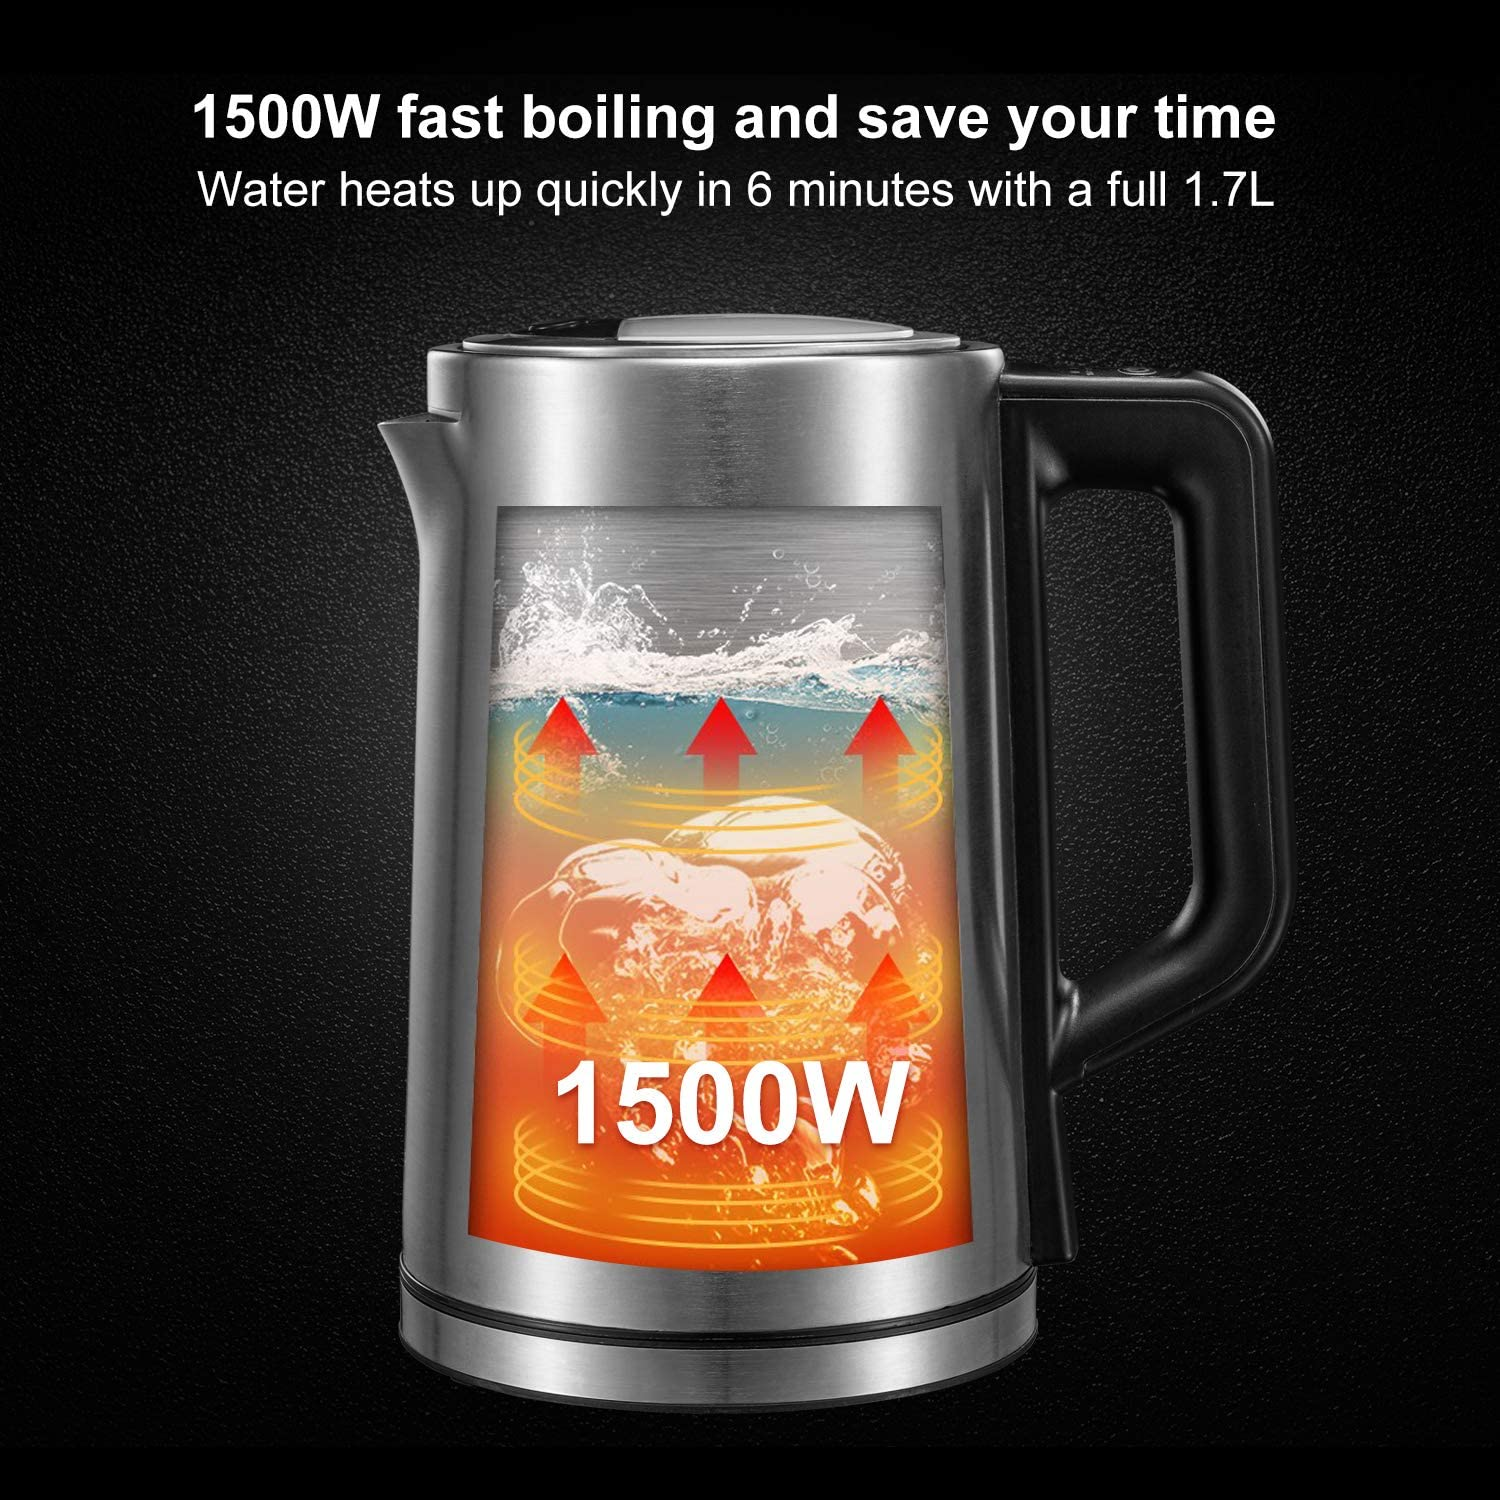 Electric Stainless Steel Tea Kettle 1.7L Bonsenkitchen Electric Kettle Temperature Control Water Boiler Automatic Shut Off Tea or Milk with Led Light 1500W Fast Heating Cordless Water Heater for Coffee